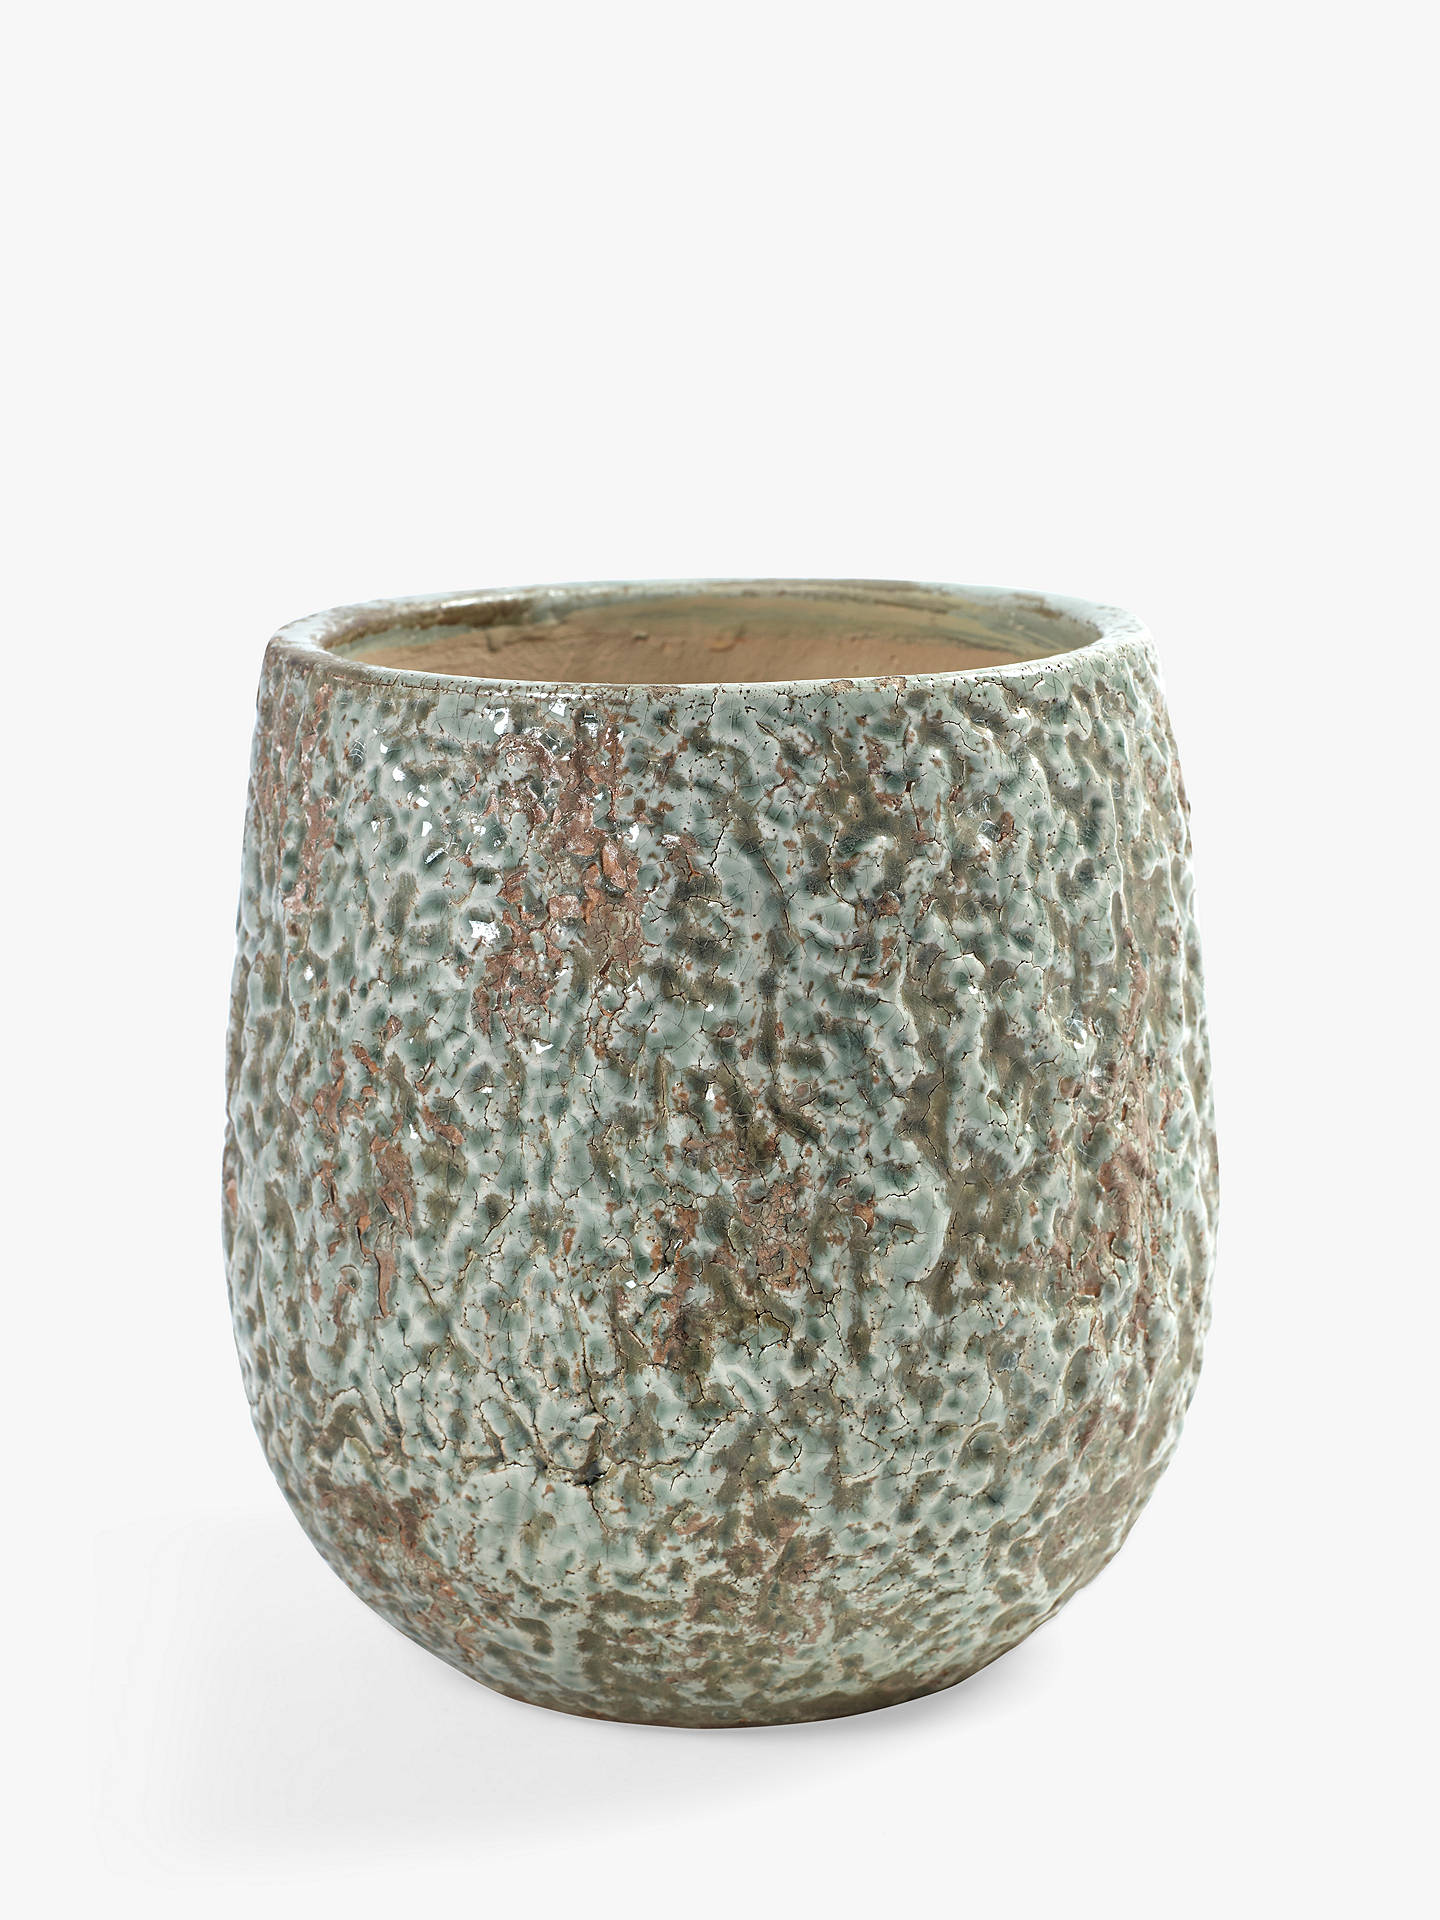 BuySerax Textured Relief Pot Online at johnlewis.com